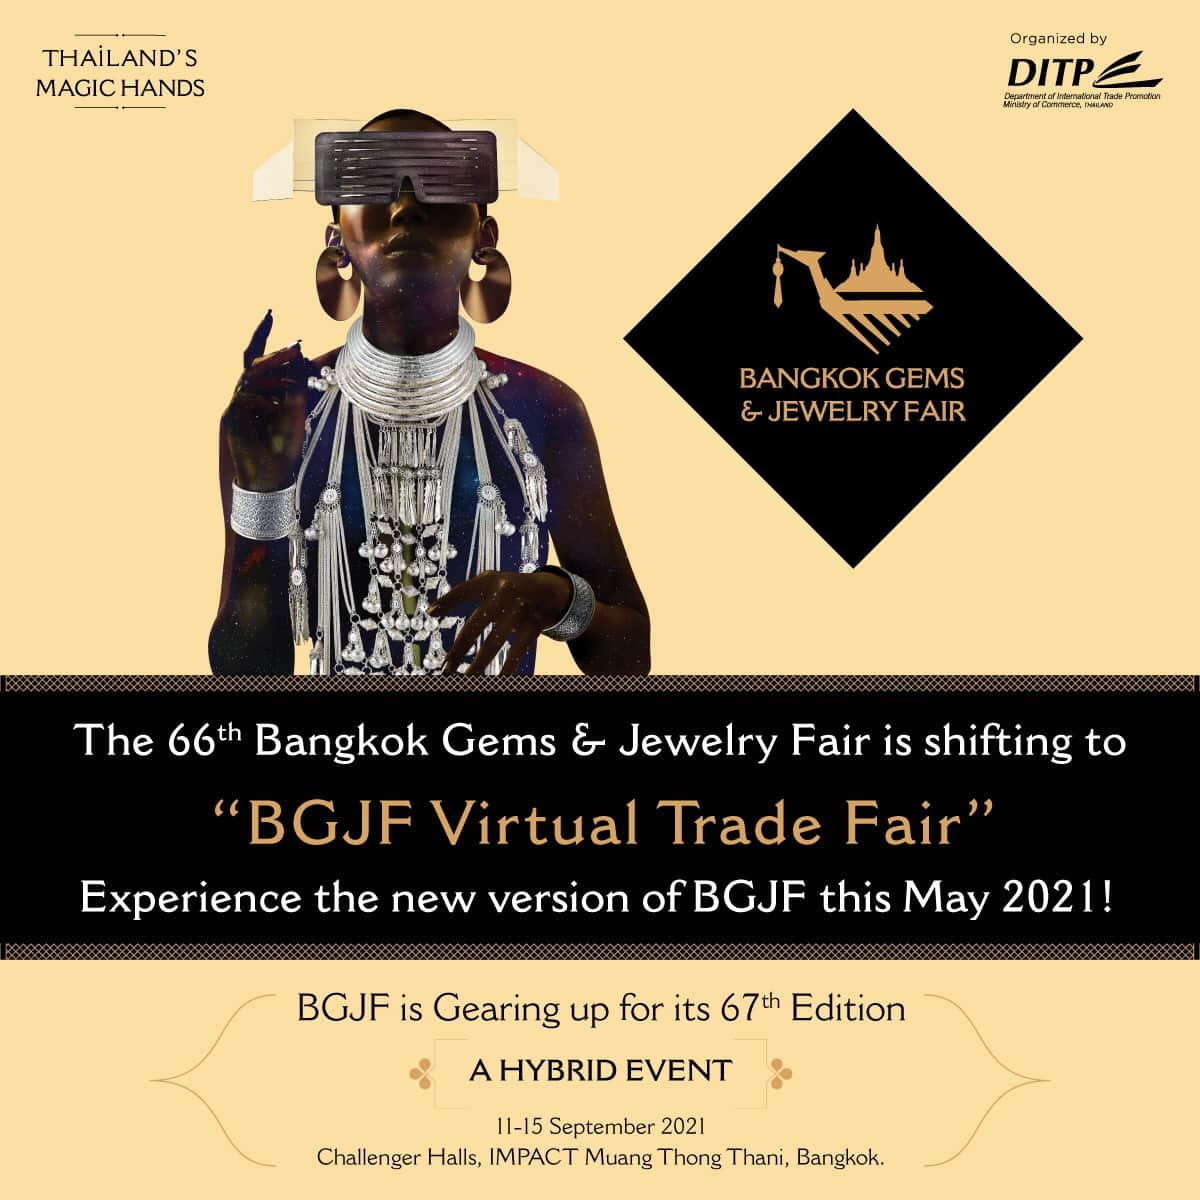 Bangkok Gems & Jewelry Fair shifted to virtual event in May